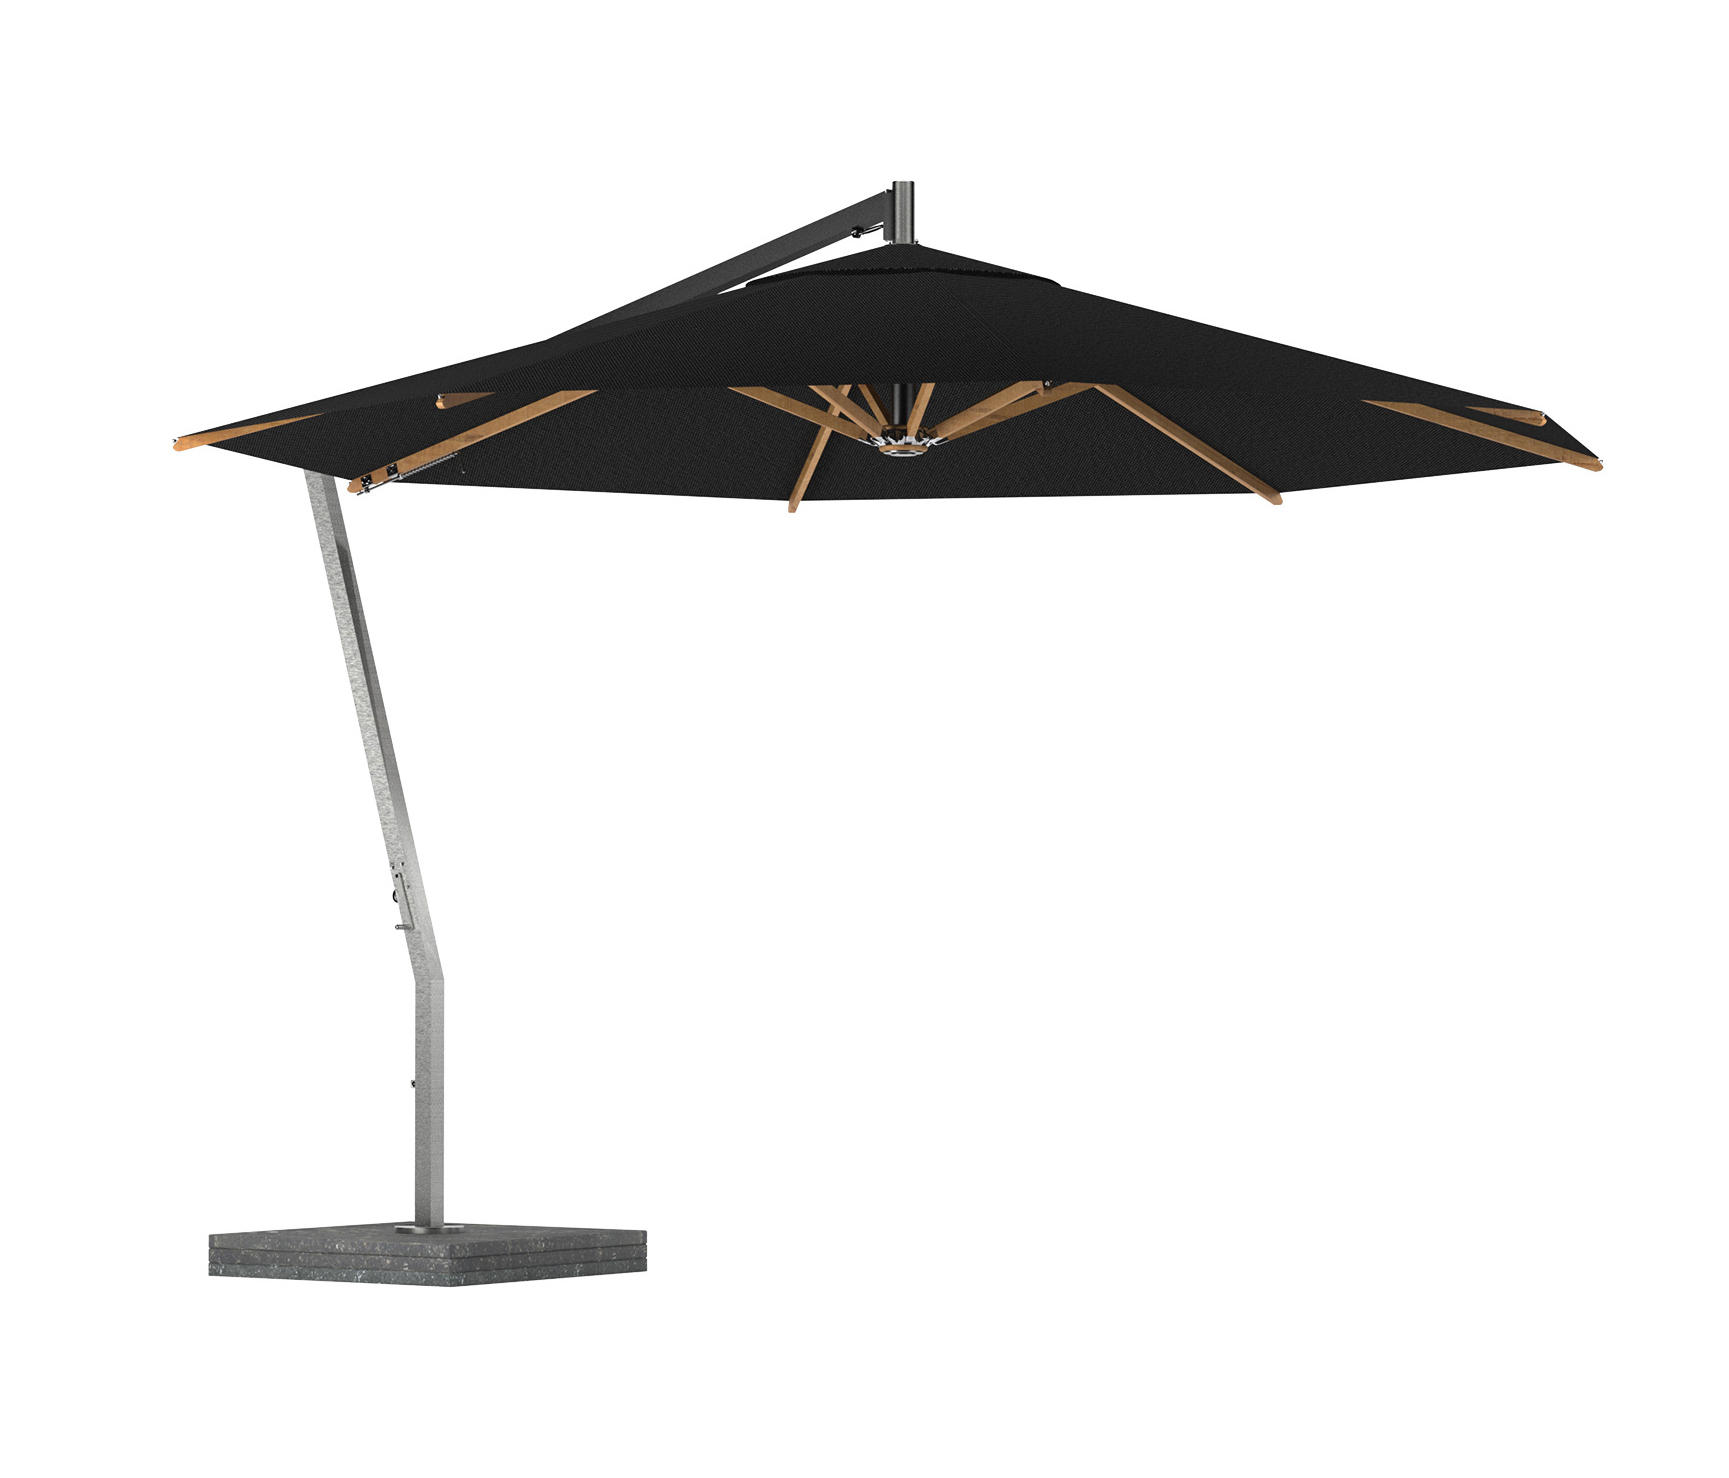 shax parasols from royal botania architonic. Black Bedroom Furniture Sets. Home Design Ideas